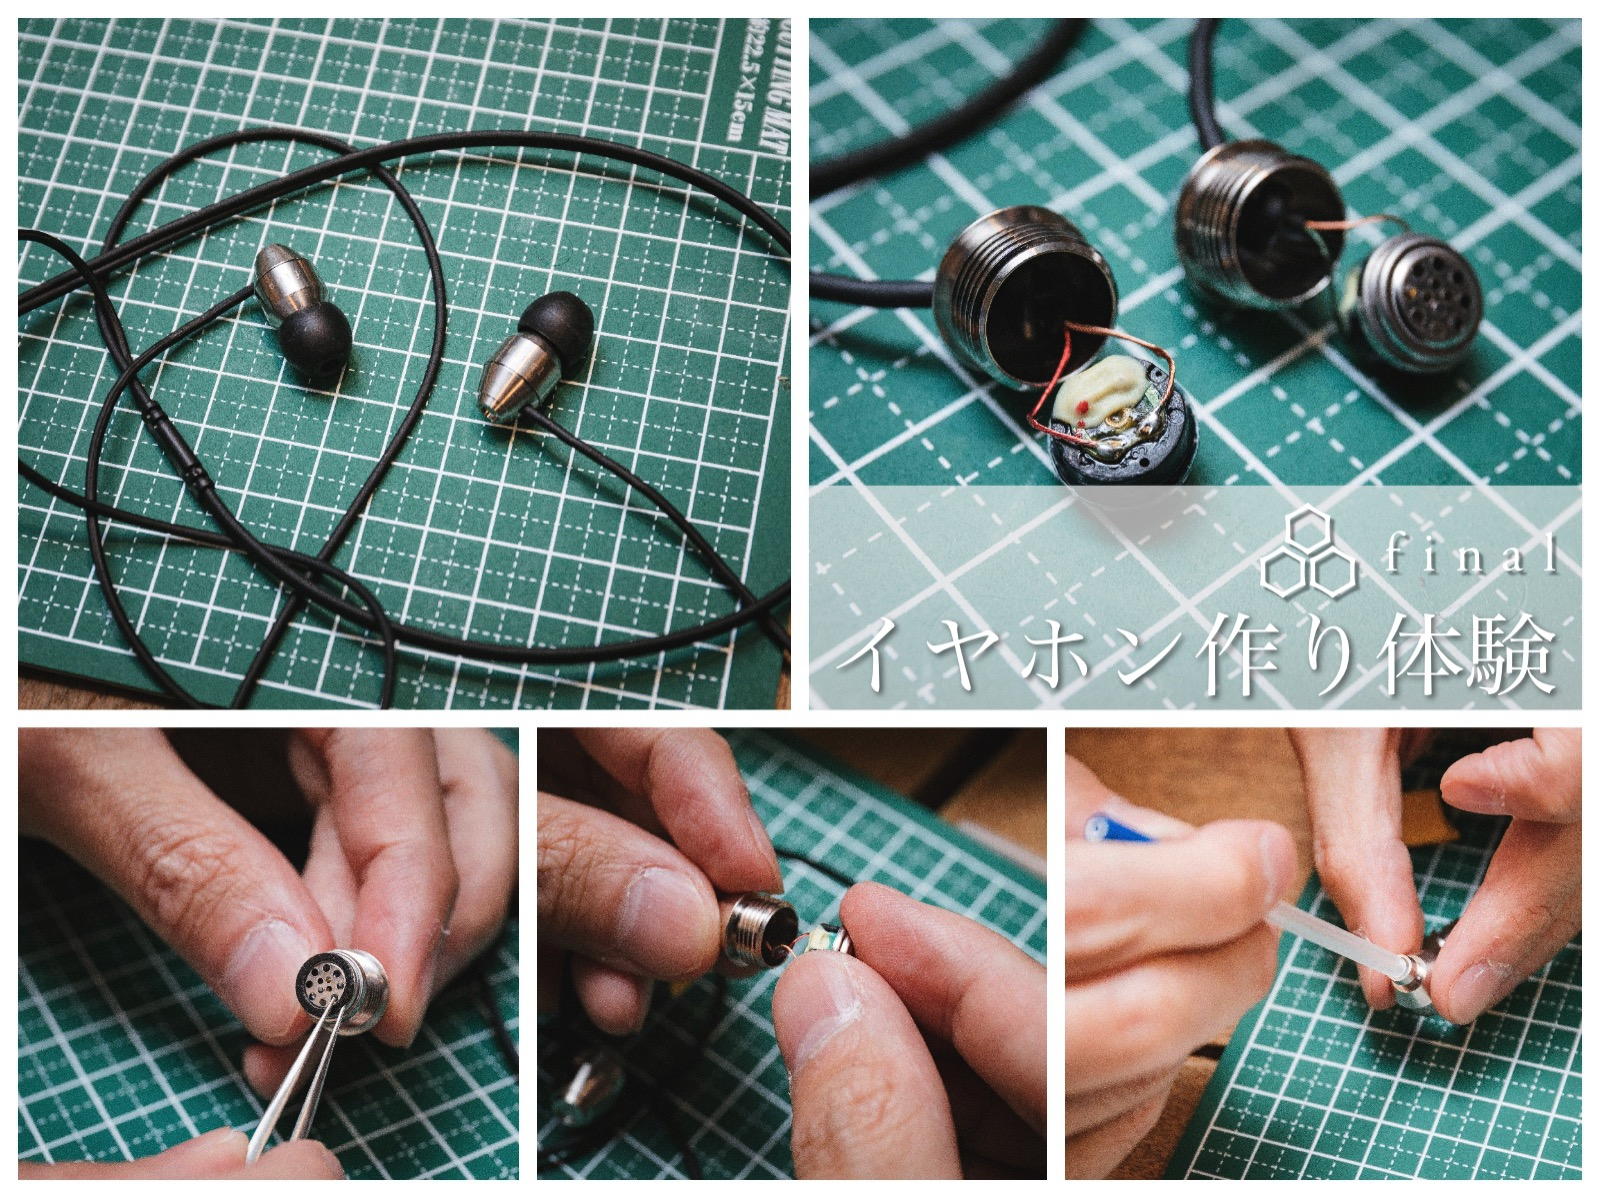 Making an Earphone with Final